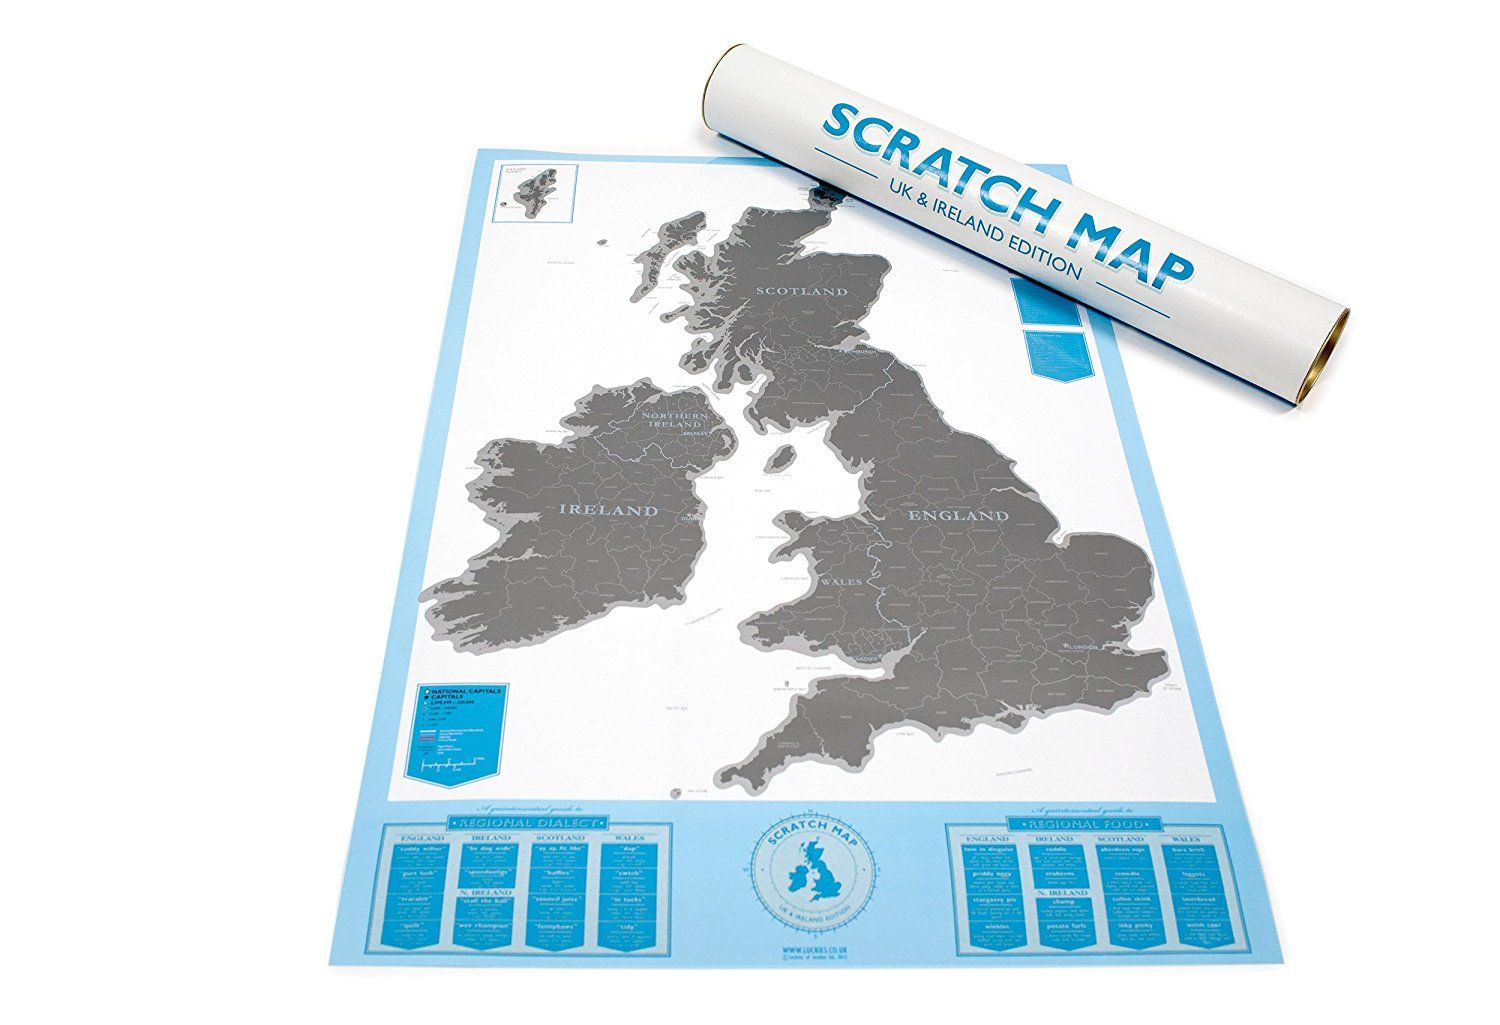 Scratch map uk ireland edition personalised map by luckies scratch map uk ireland edition personalised map by luckies amazon publicscrutiny Image collections